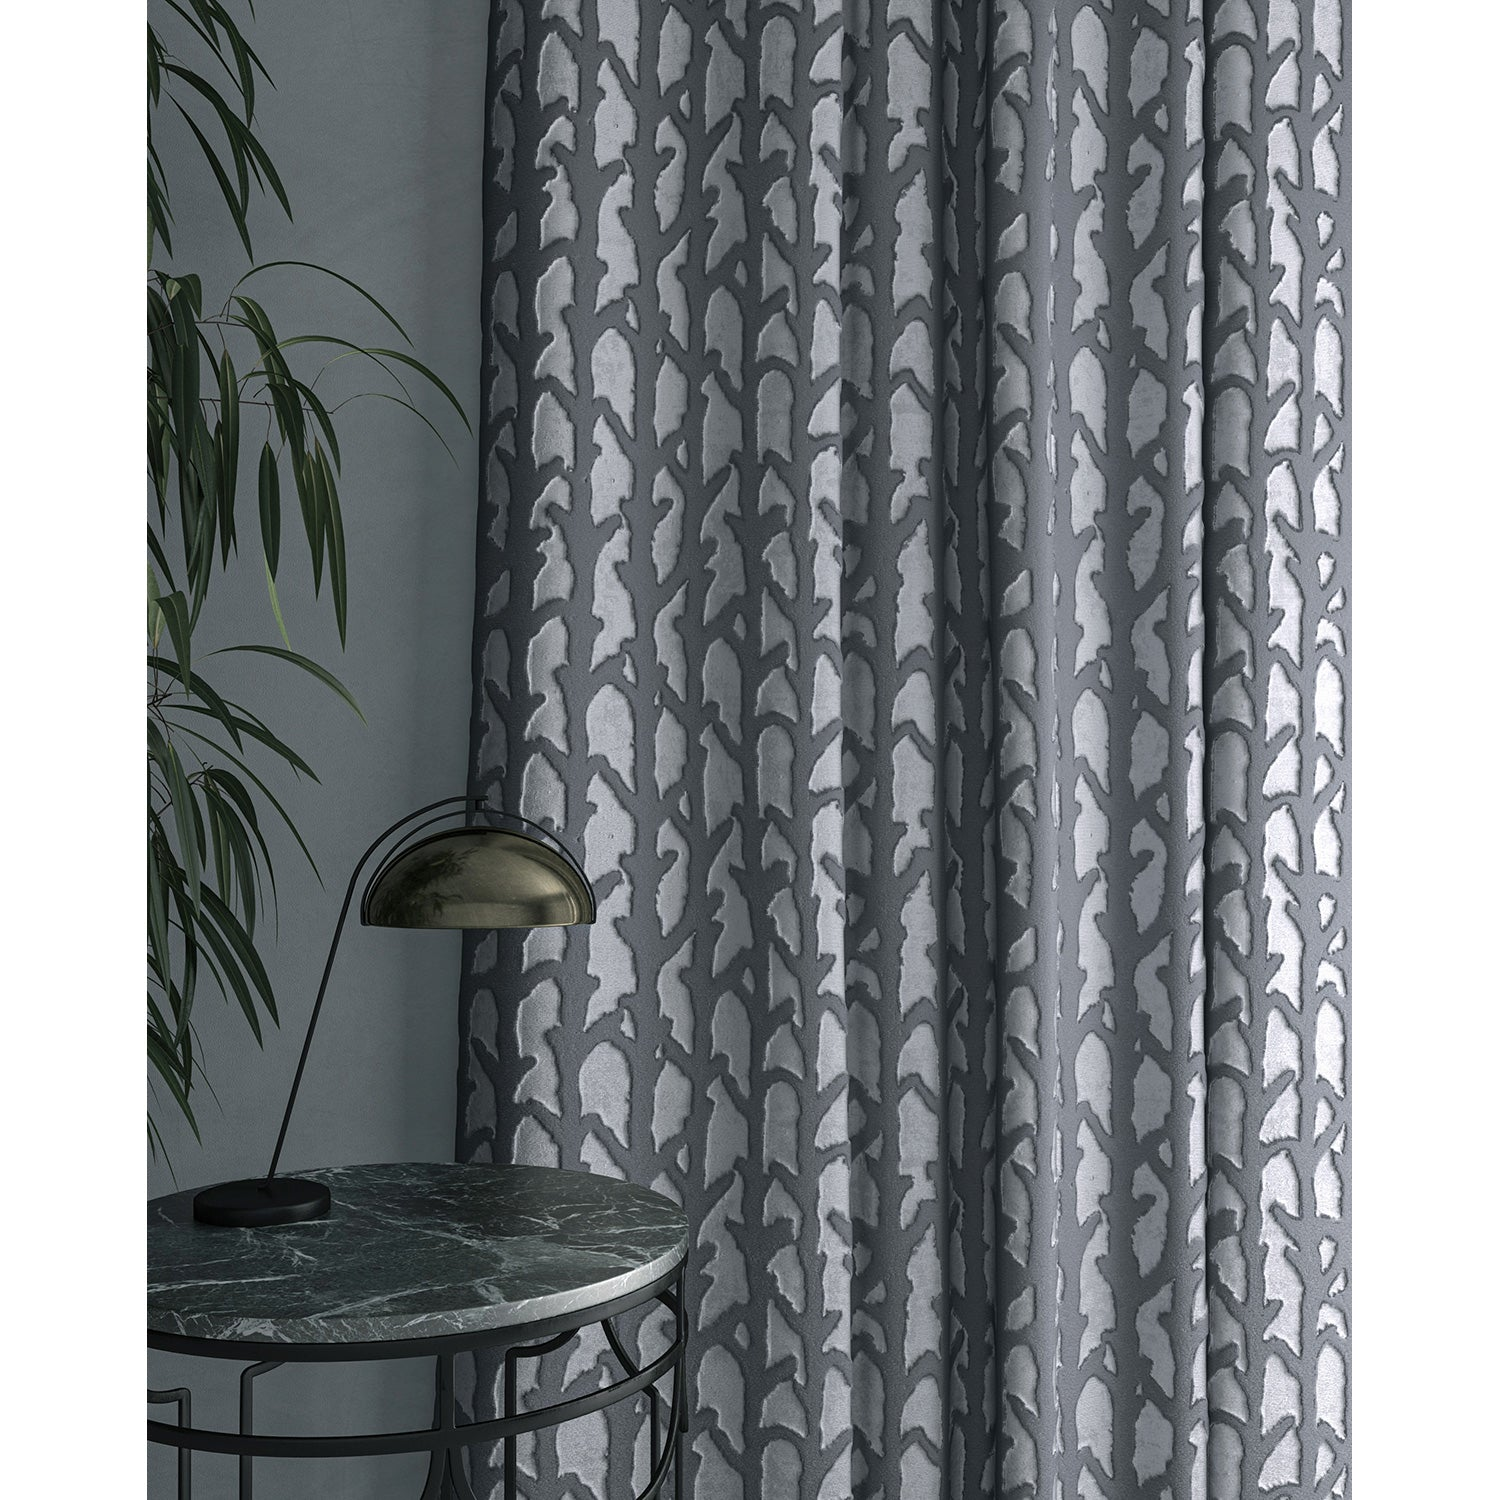 Curtain in luxury blue velvet fabric with abstract branch design